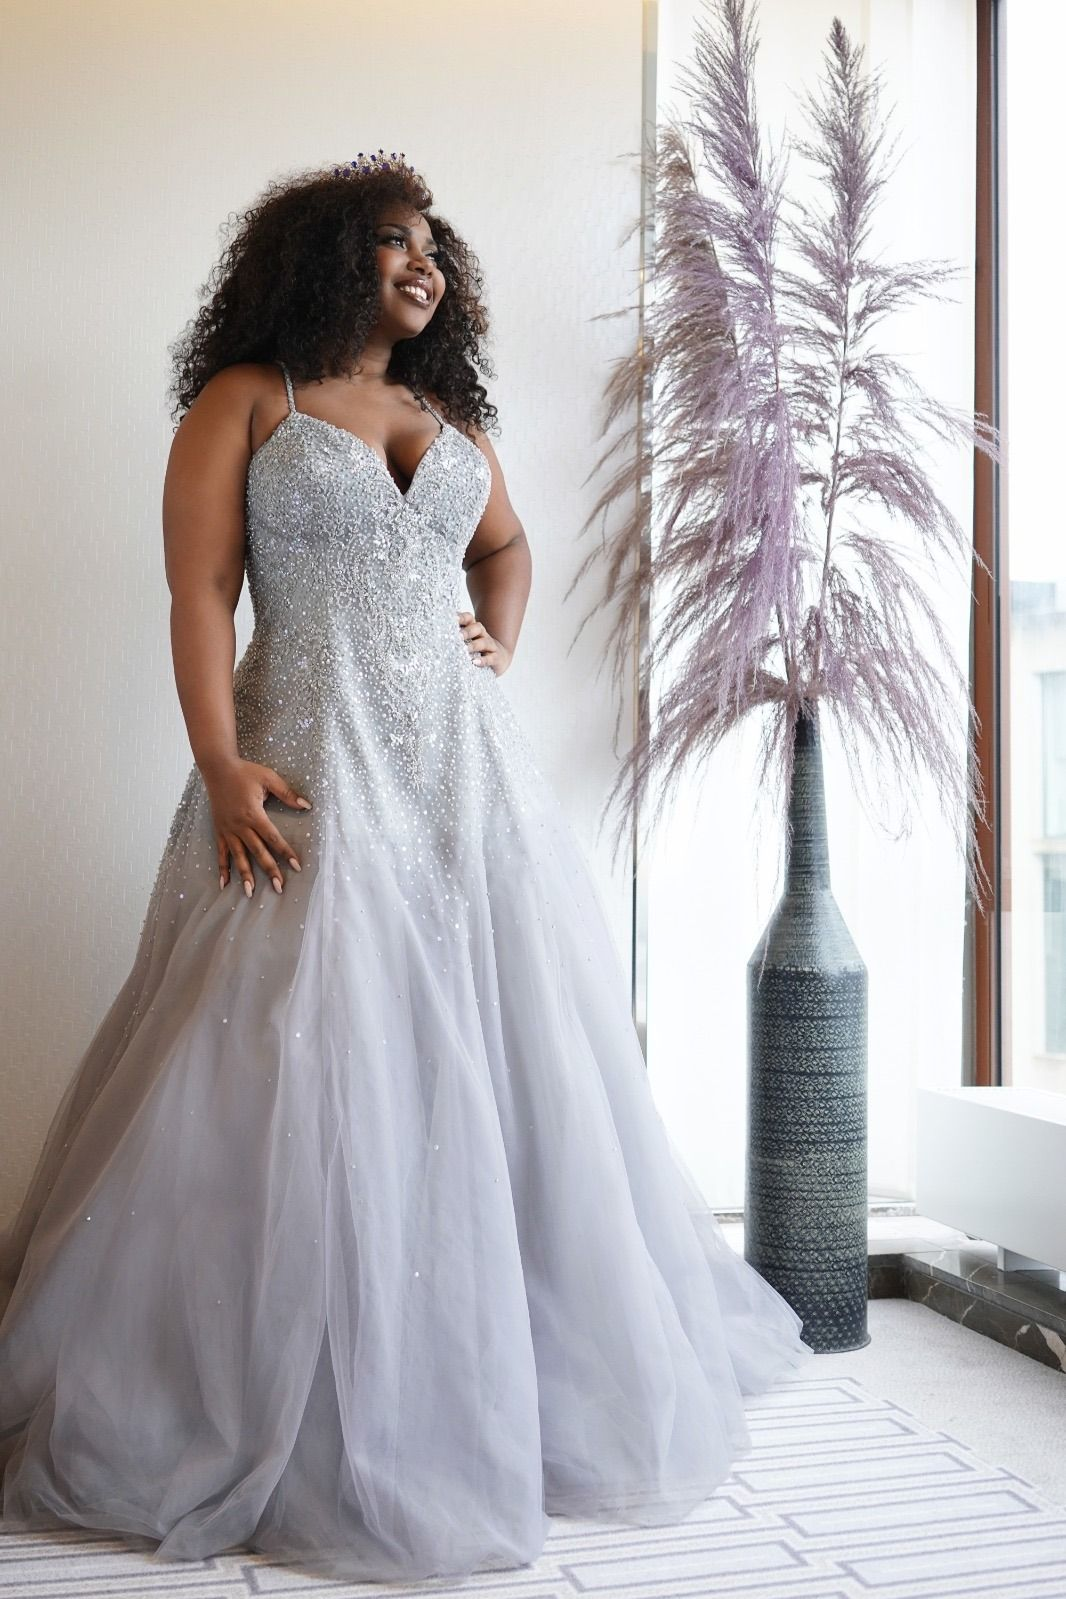 Gorgeous Plus Size Wedding Dress In Color Platinum Grey Worn By Curvy Mosa Nena Representing Curacao [ 1599 x 1066 Pixel ]